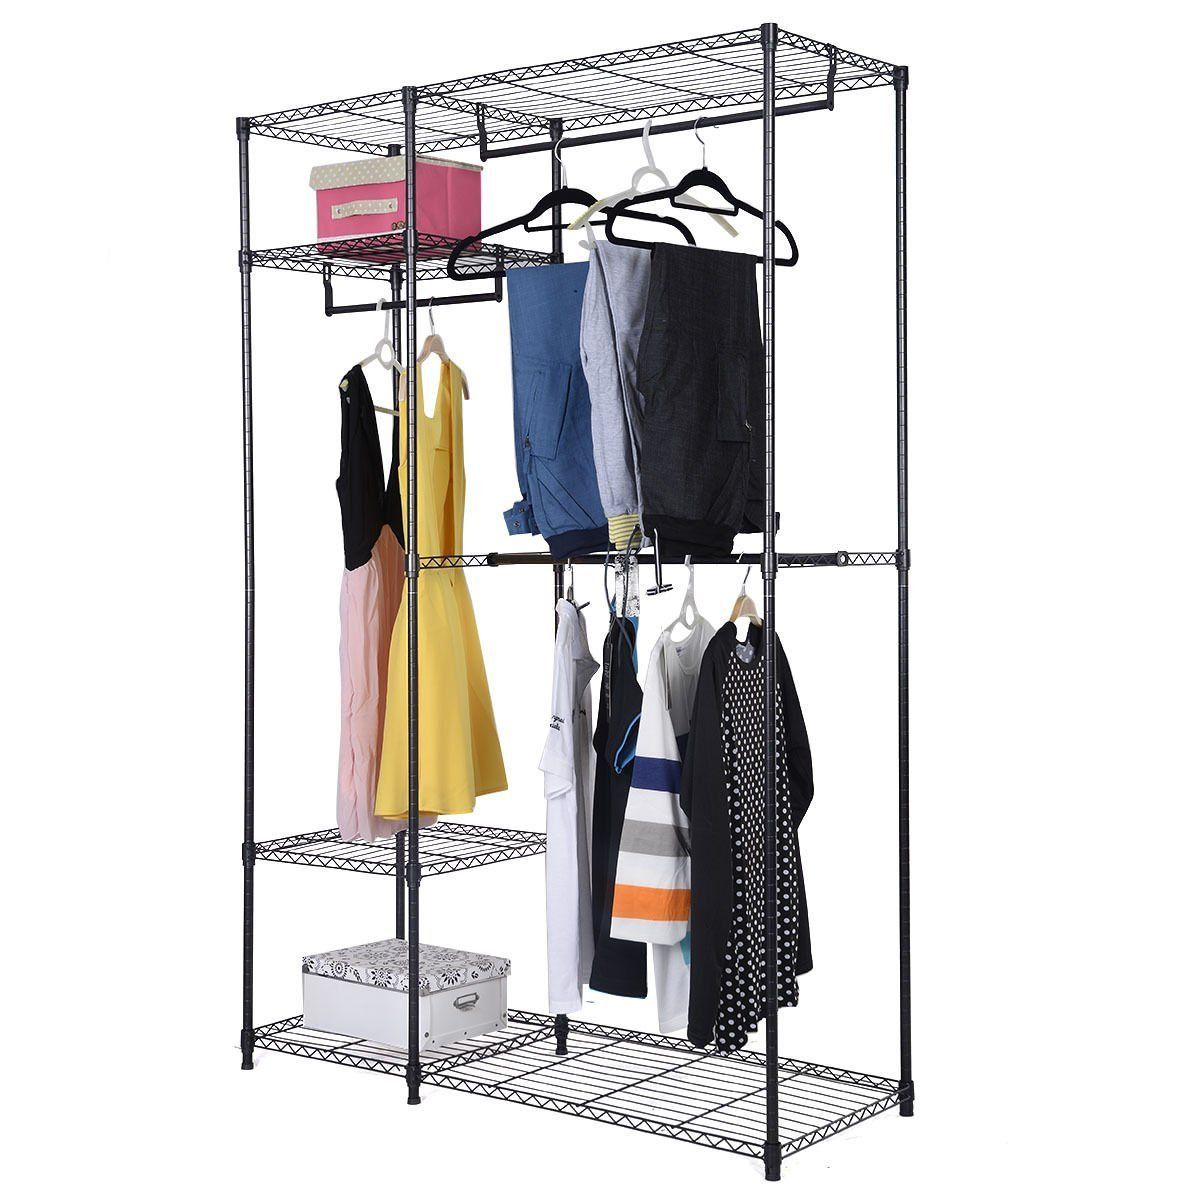 Portable Clothes Wardrobe Garment Rack Home Closet Hanger Storage Organizer